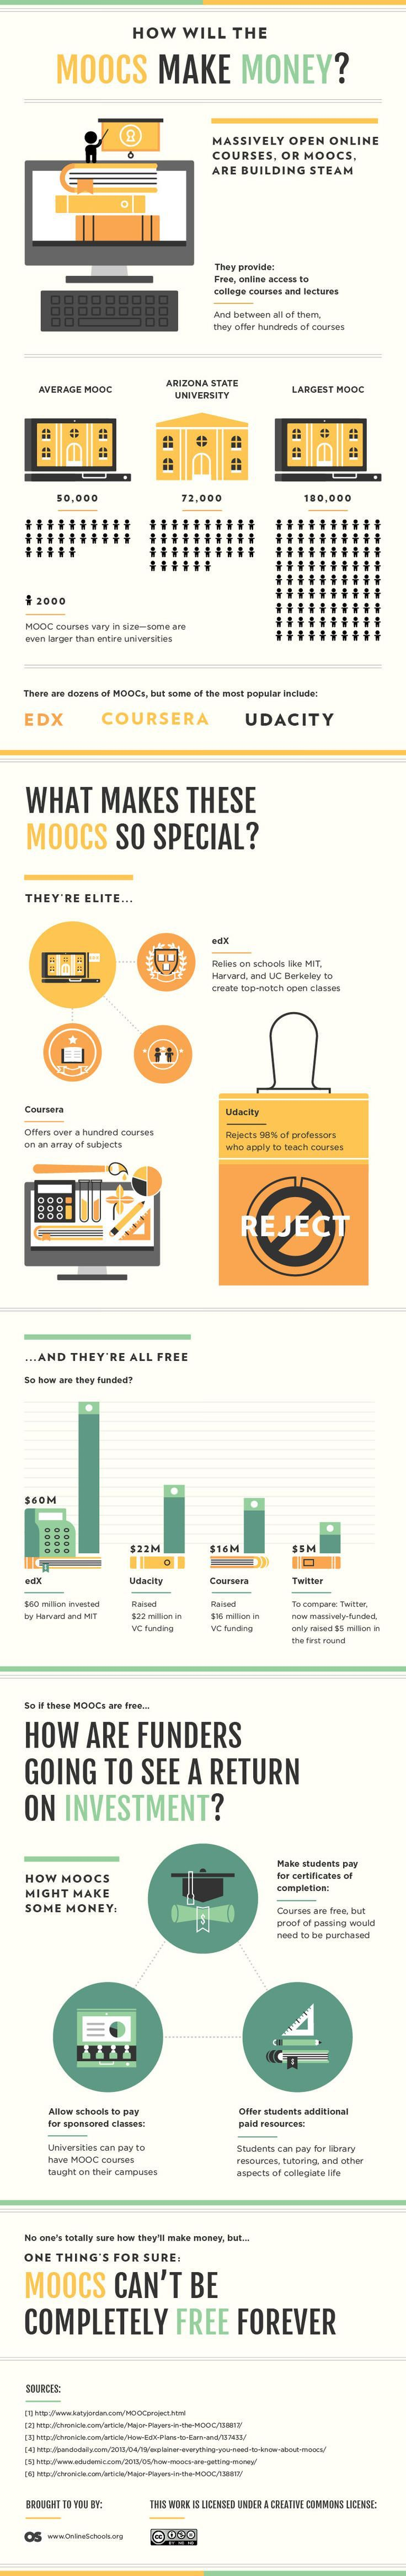 10 best MOOC images on Pinterest | College teaching, Higher ...